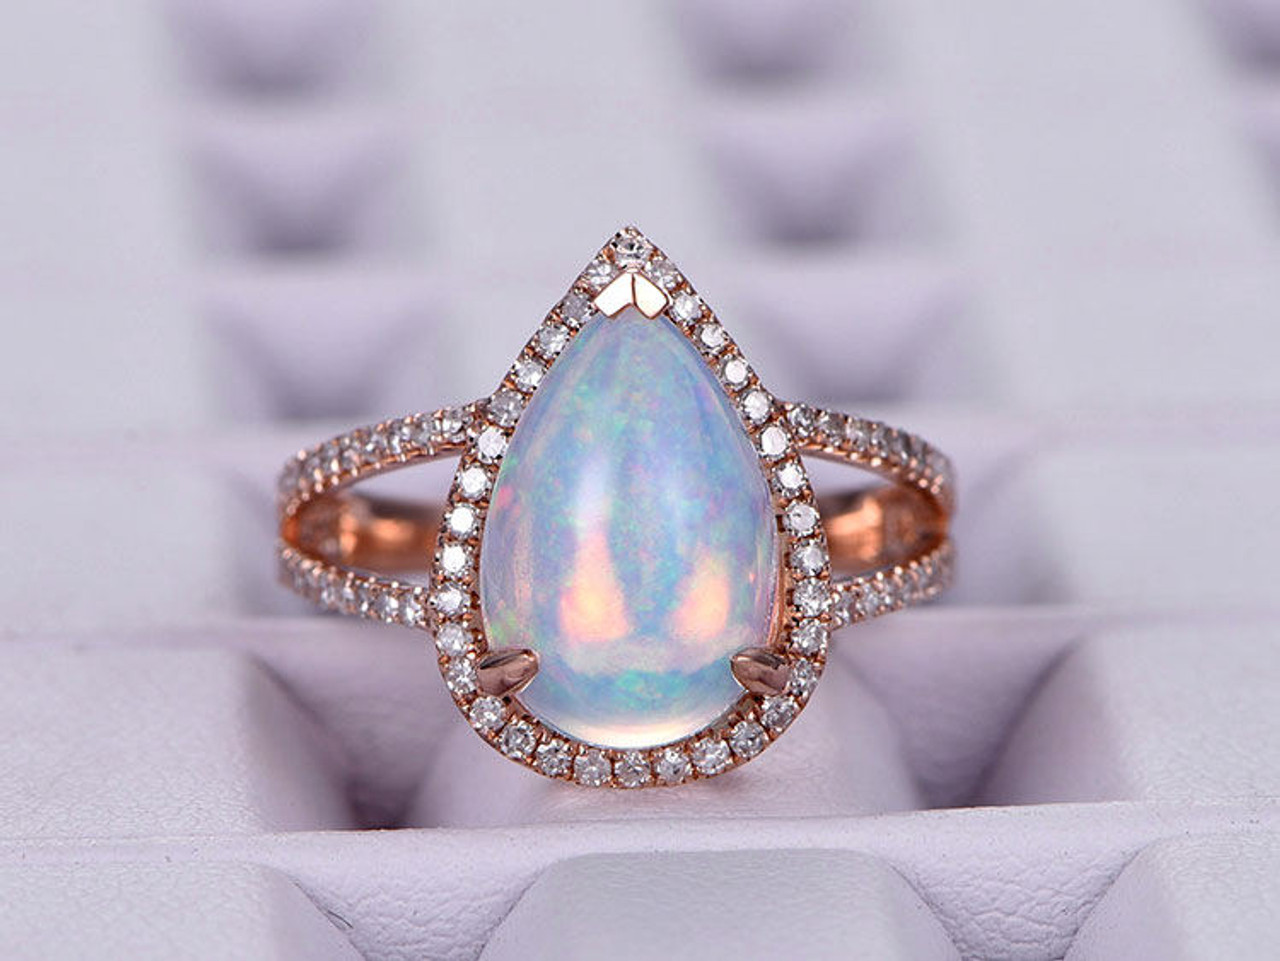 Pear-shaped African Opal Engagement ring/